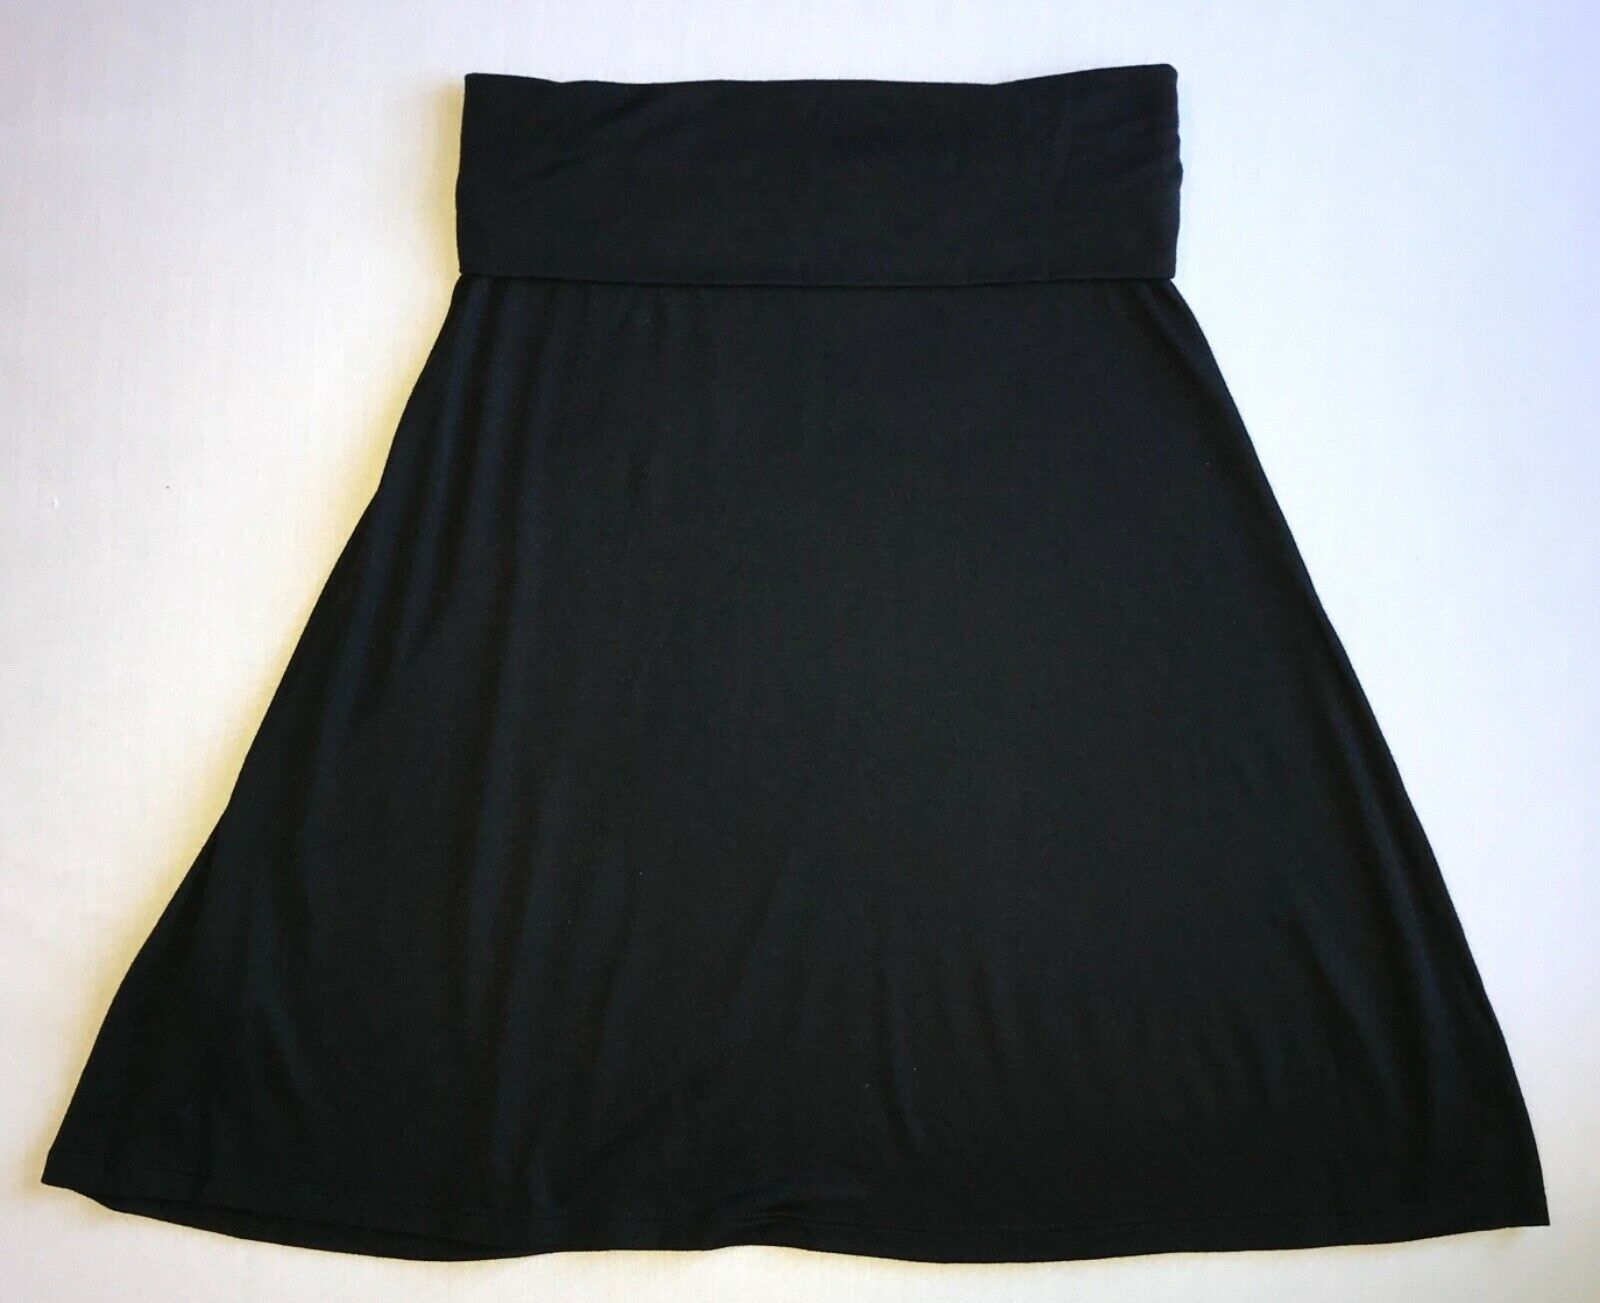 Primary image for Black Jersey Knit Mid Length Flare Skirt with Fold Over Waist in Xtra Small